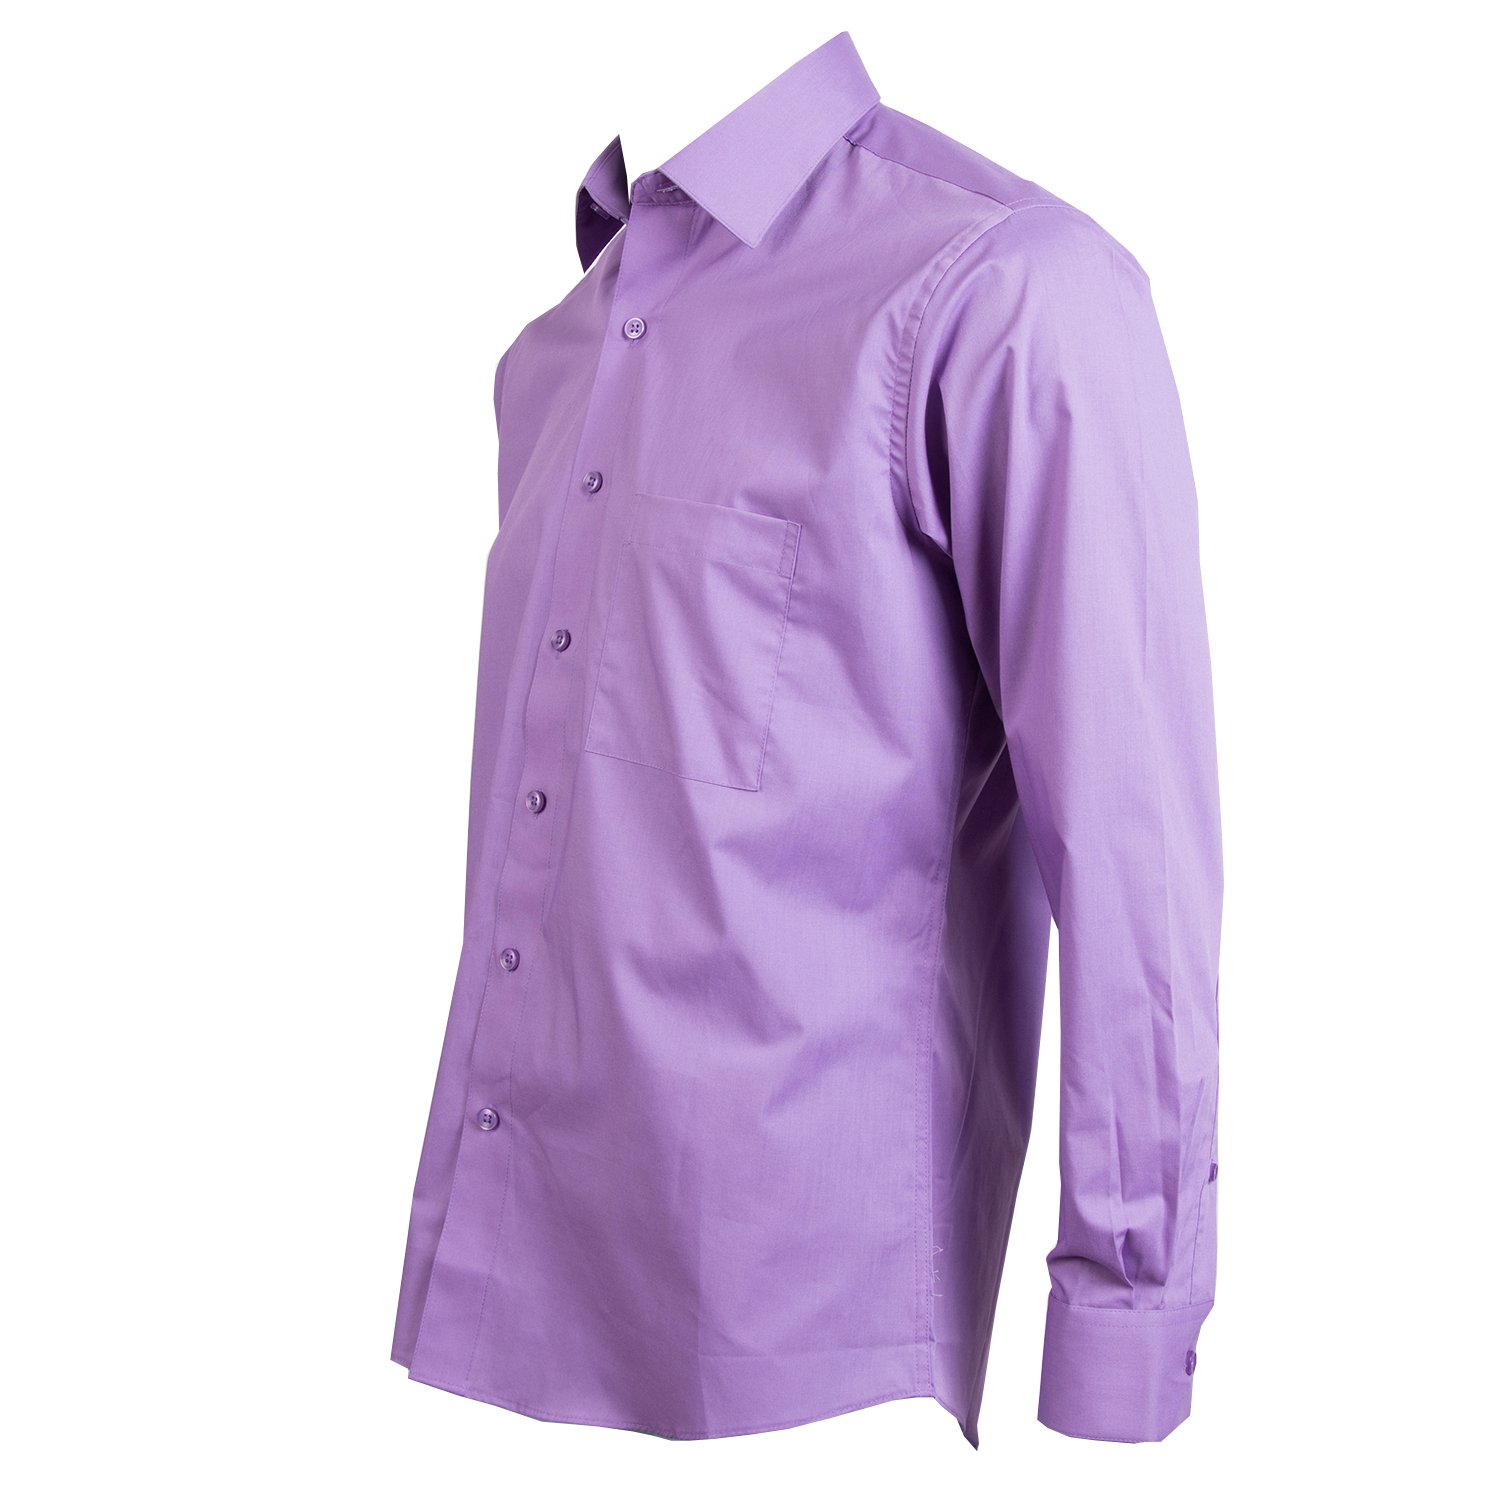 Pierre Cardin Mens Shirts Long Sleeves Slim Fit Dress Shirts For